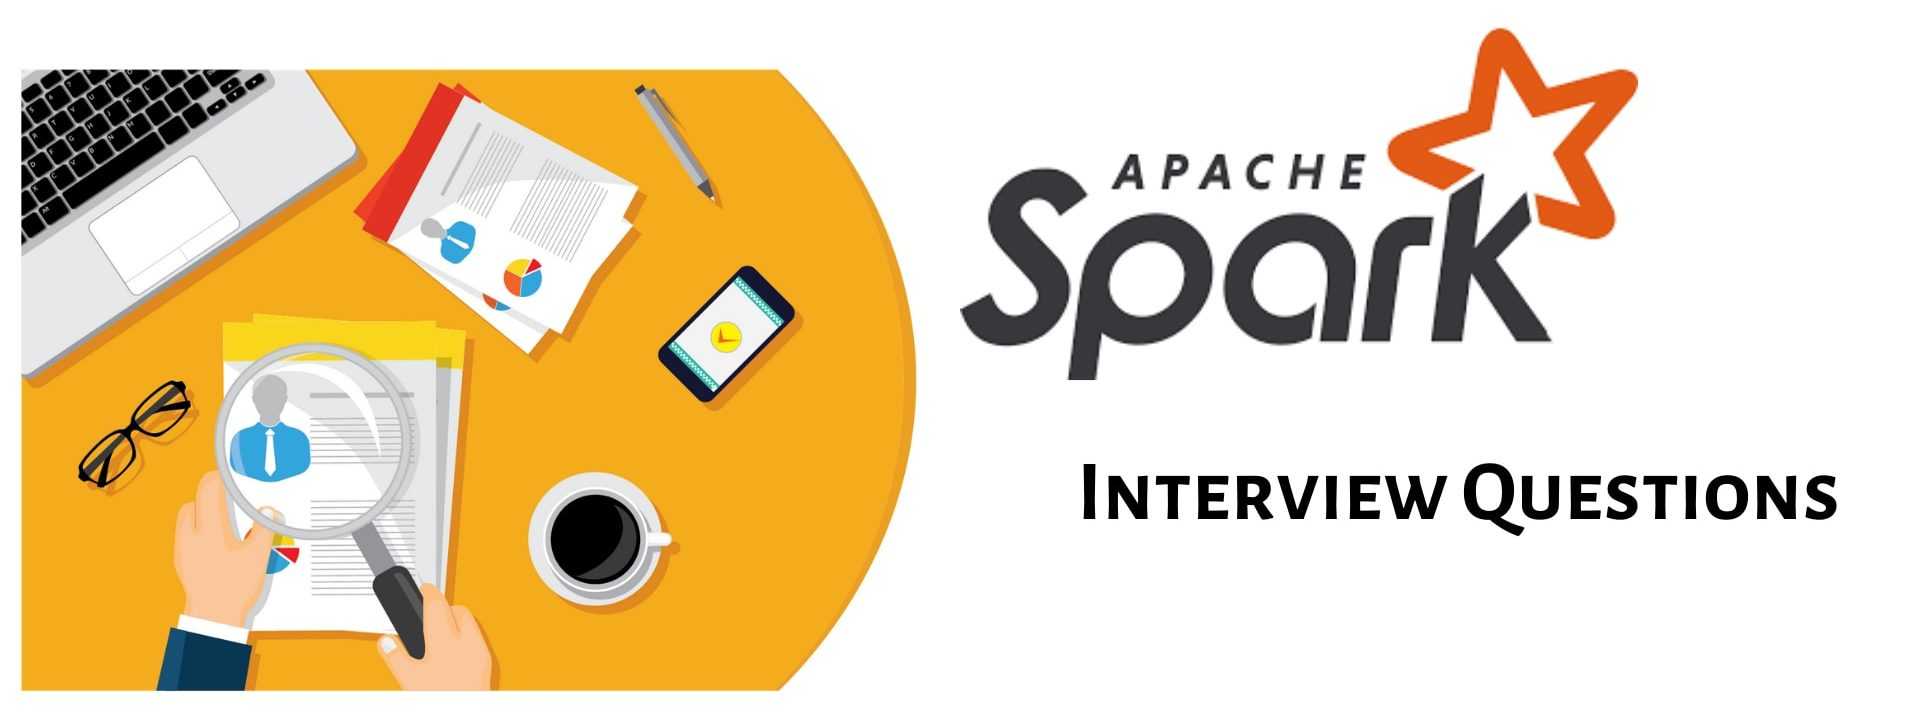 Spark interview questions e1577370588487 - Top 20+ Spark Interview Questions & Answers for 2020